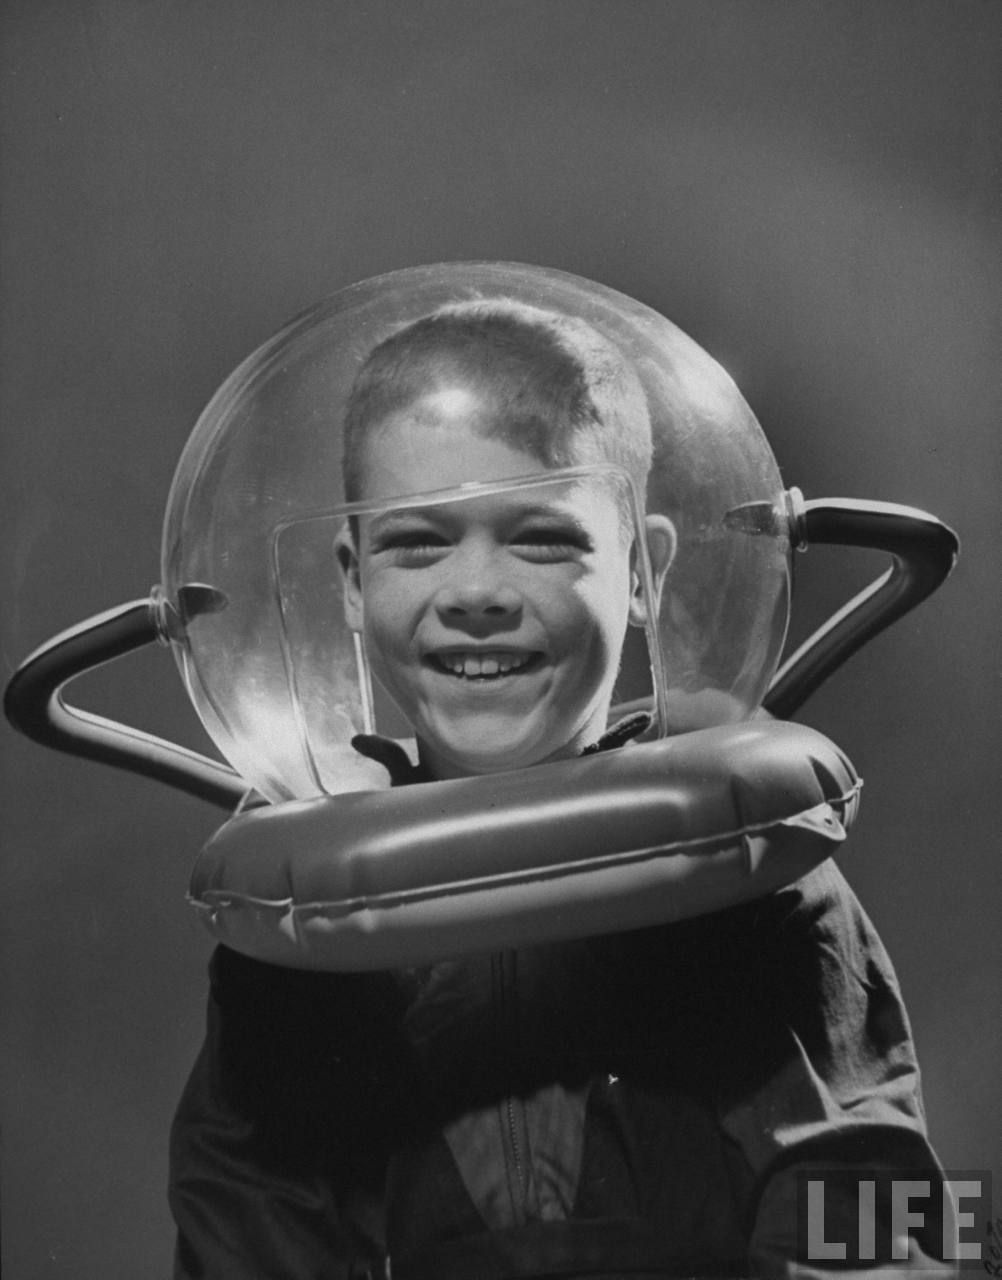 50s space suits - photo #27